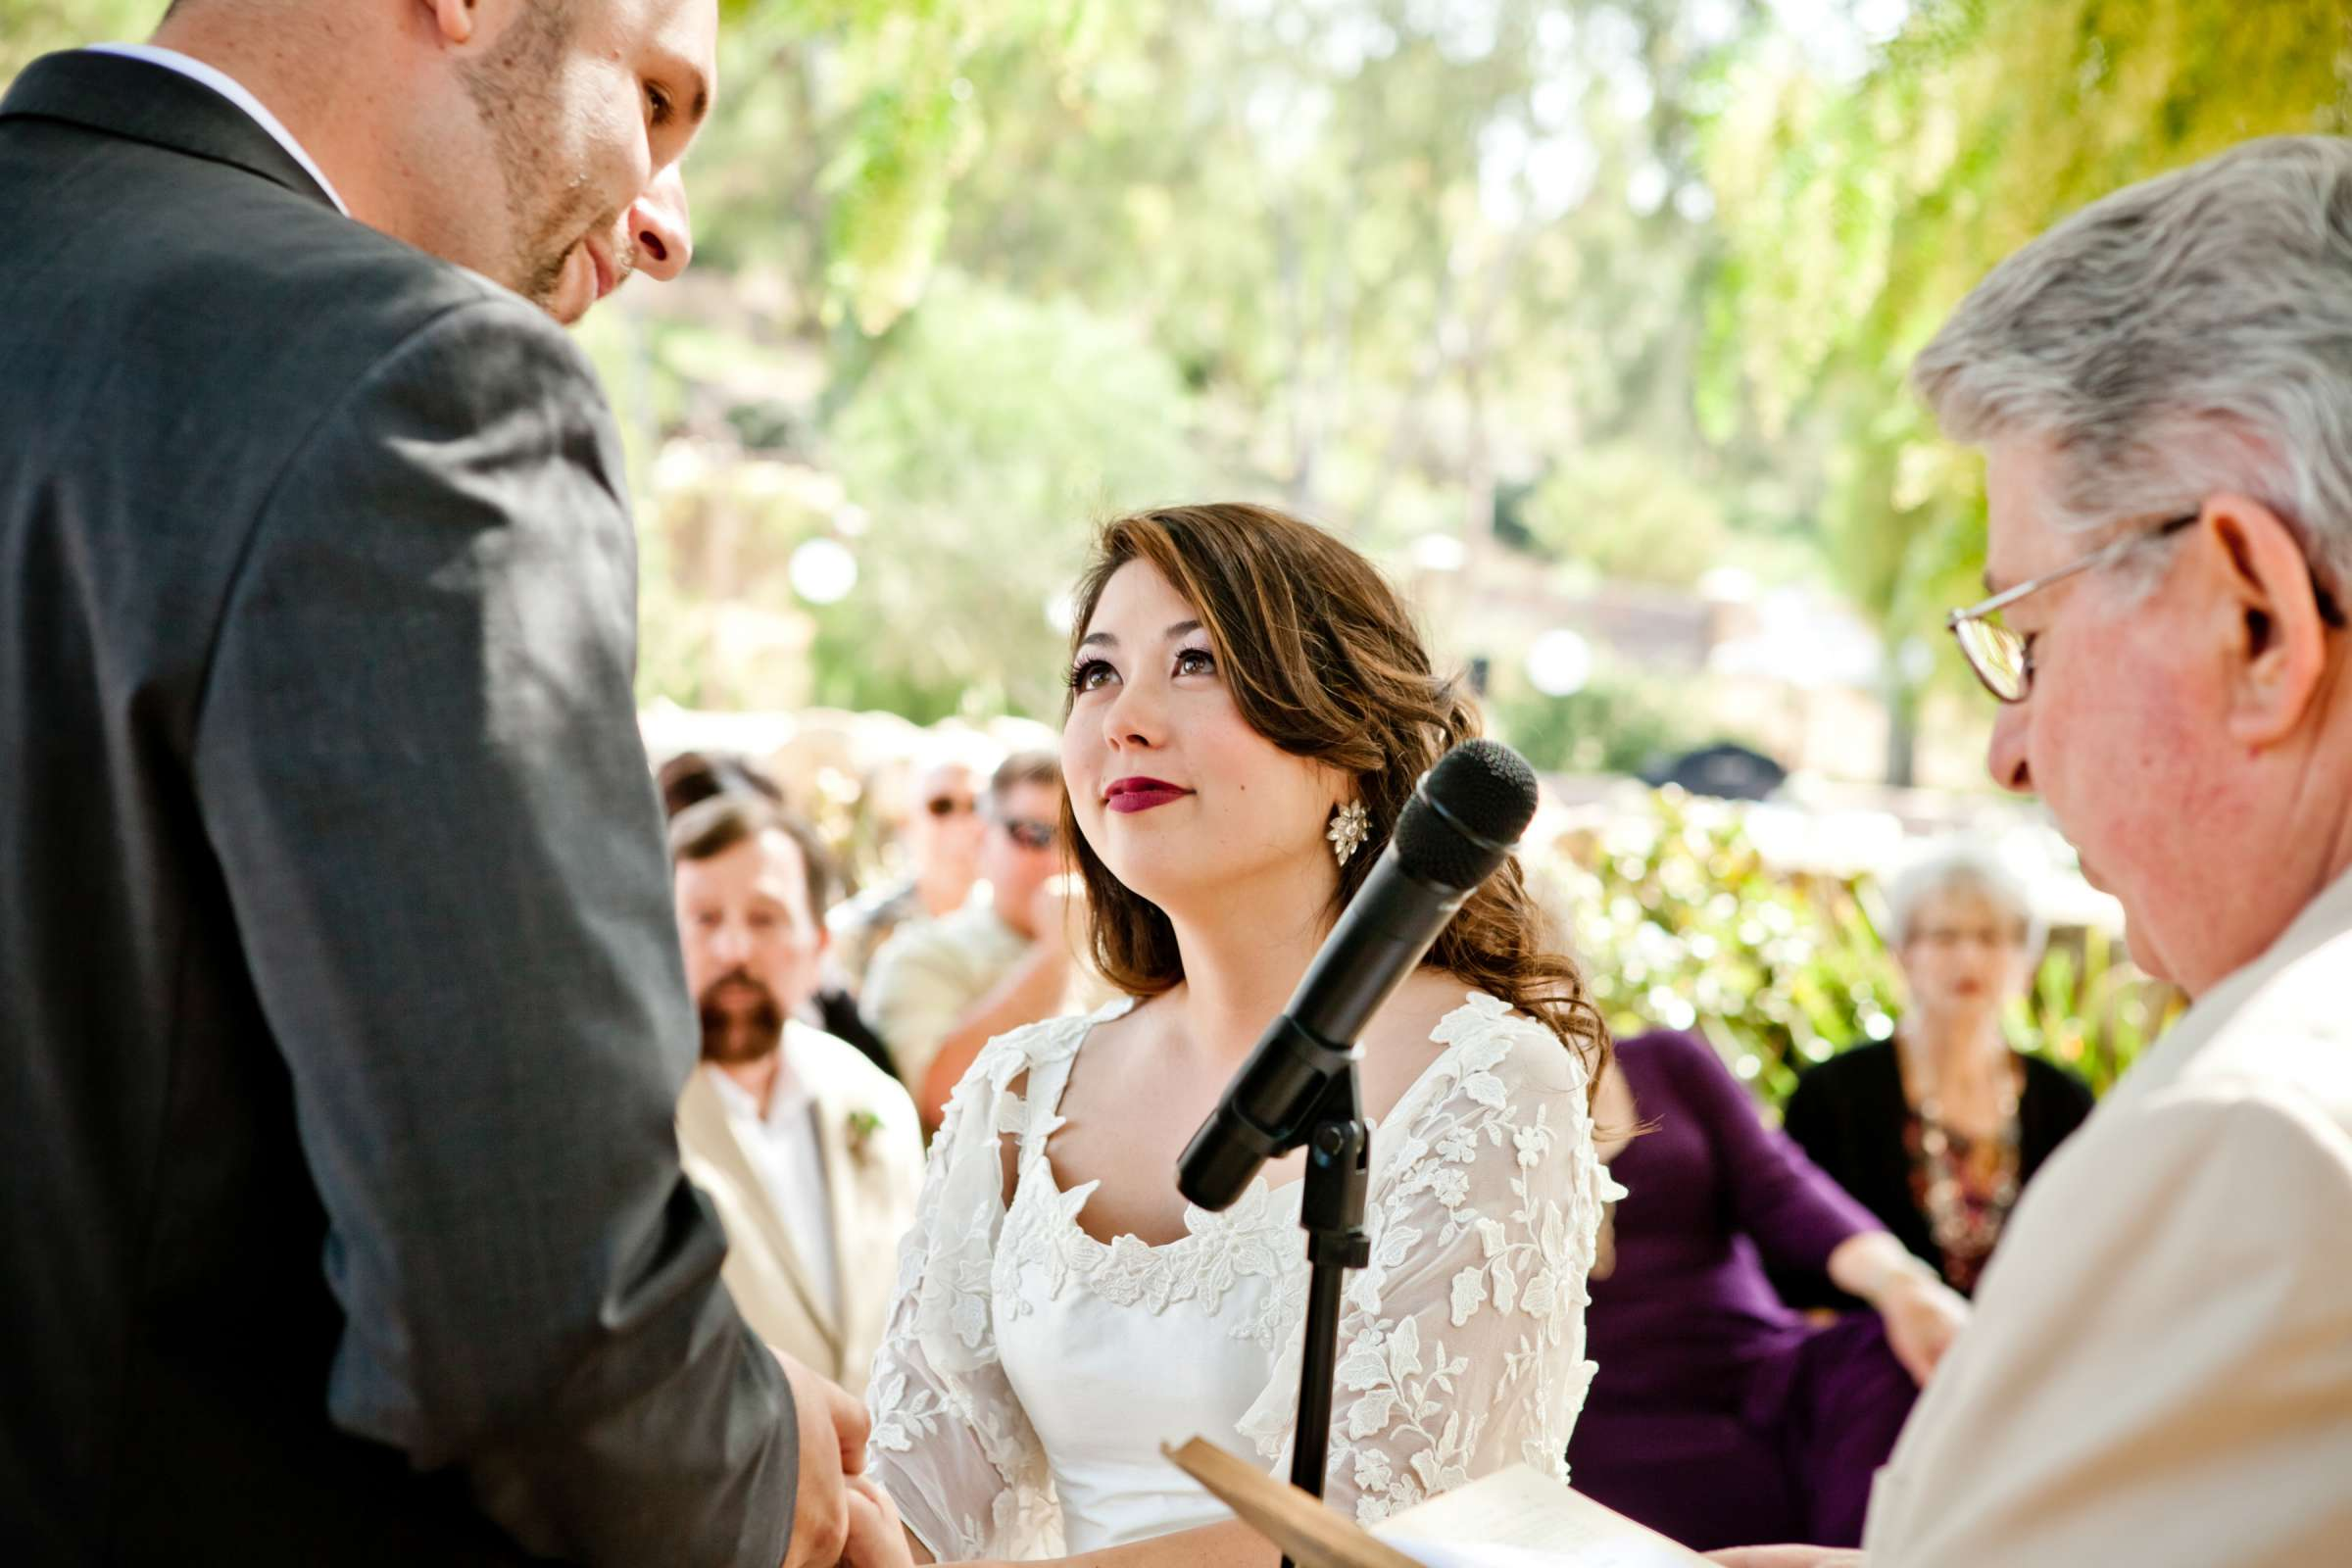 Leo Carrillo Ranch Wedding coordinated by Weddings by Lisa Nicole, Bethany and Aaron Wedding Photo #26 by True Photography